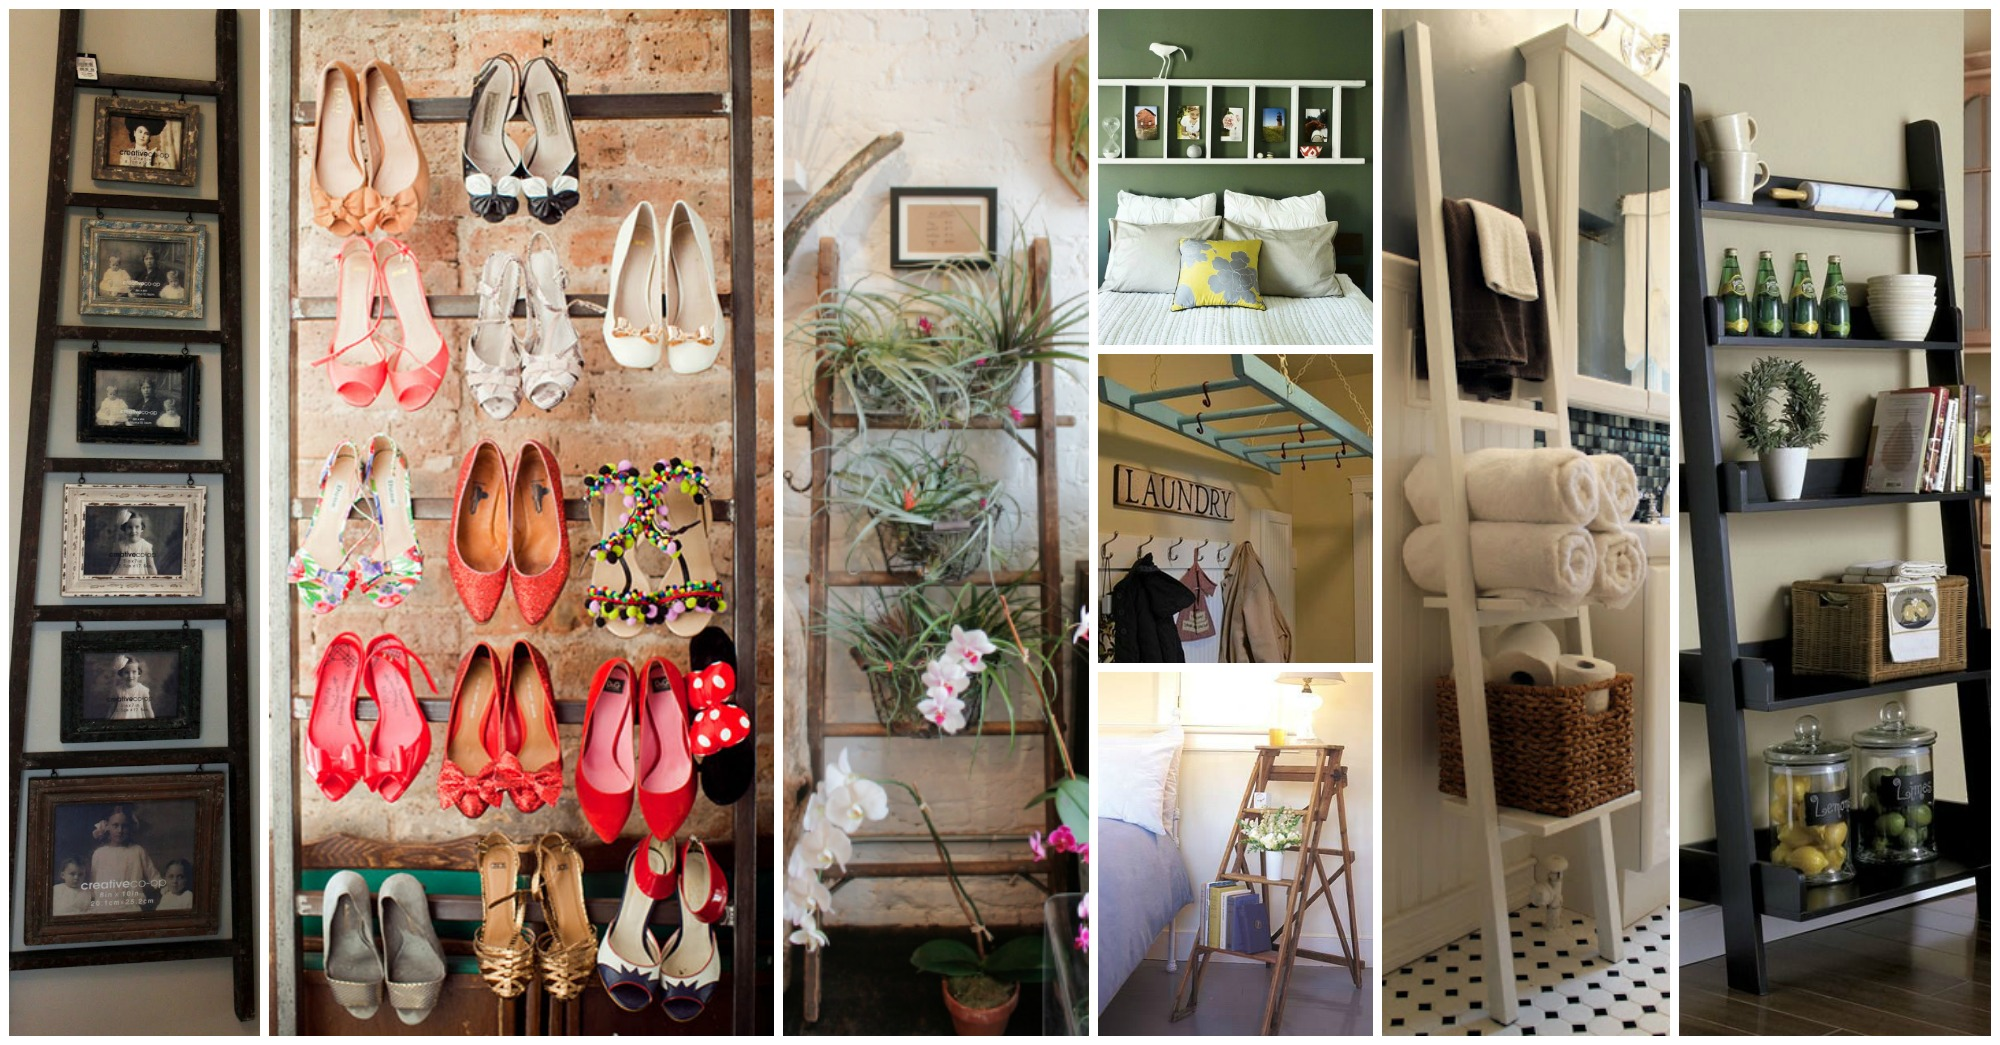 15 Smart Ways to Incorporate a Wooden Ladder in Your Interior